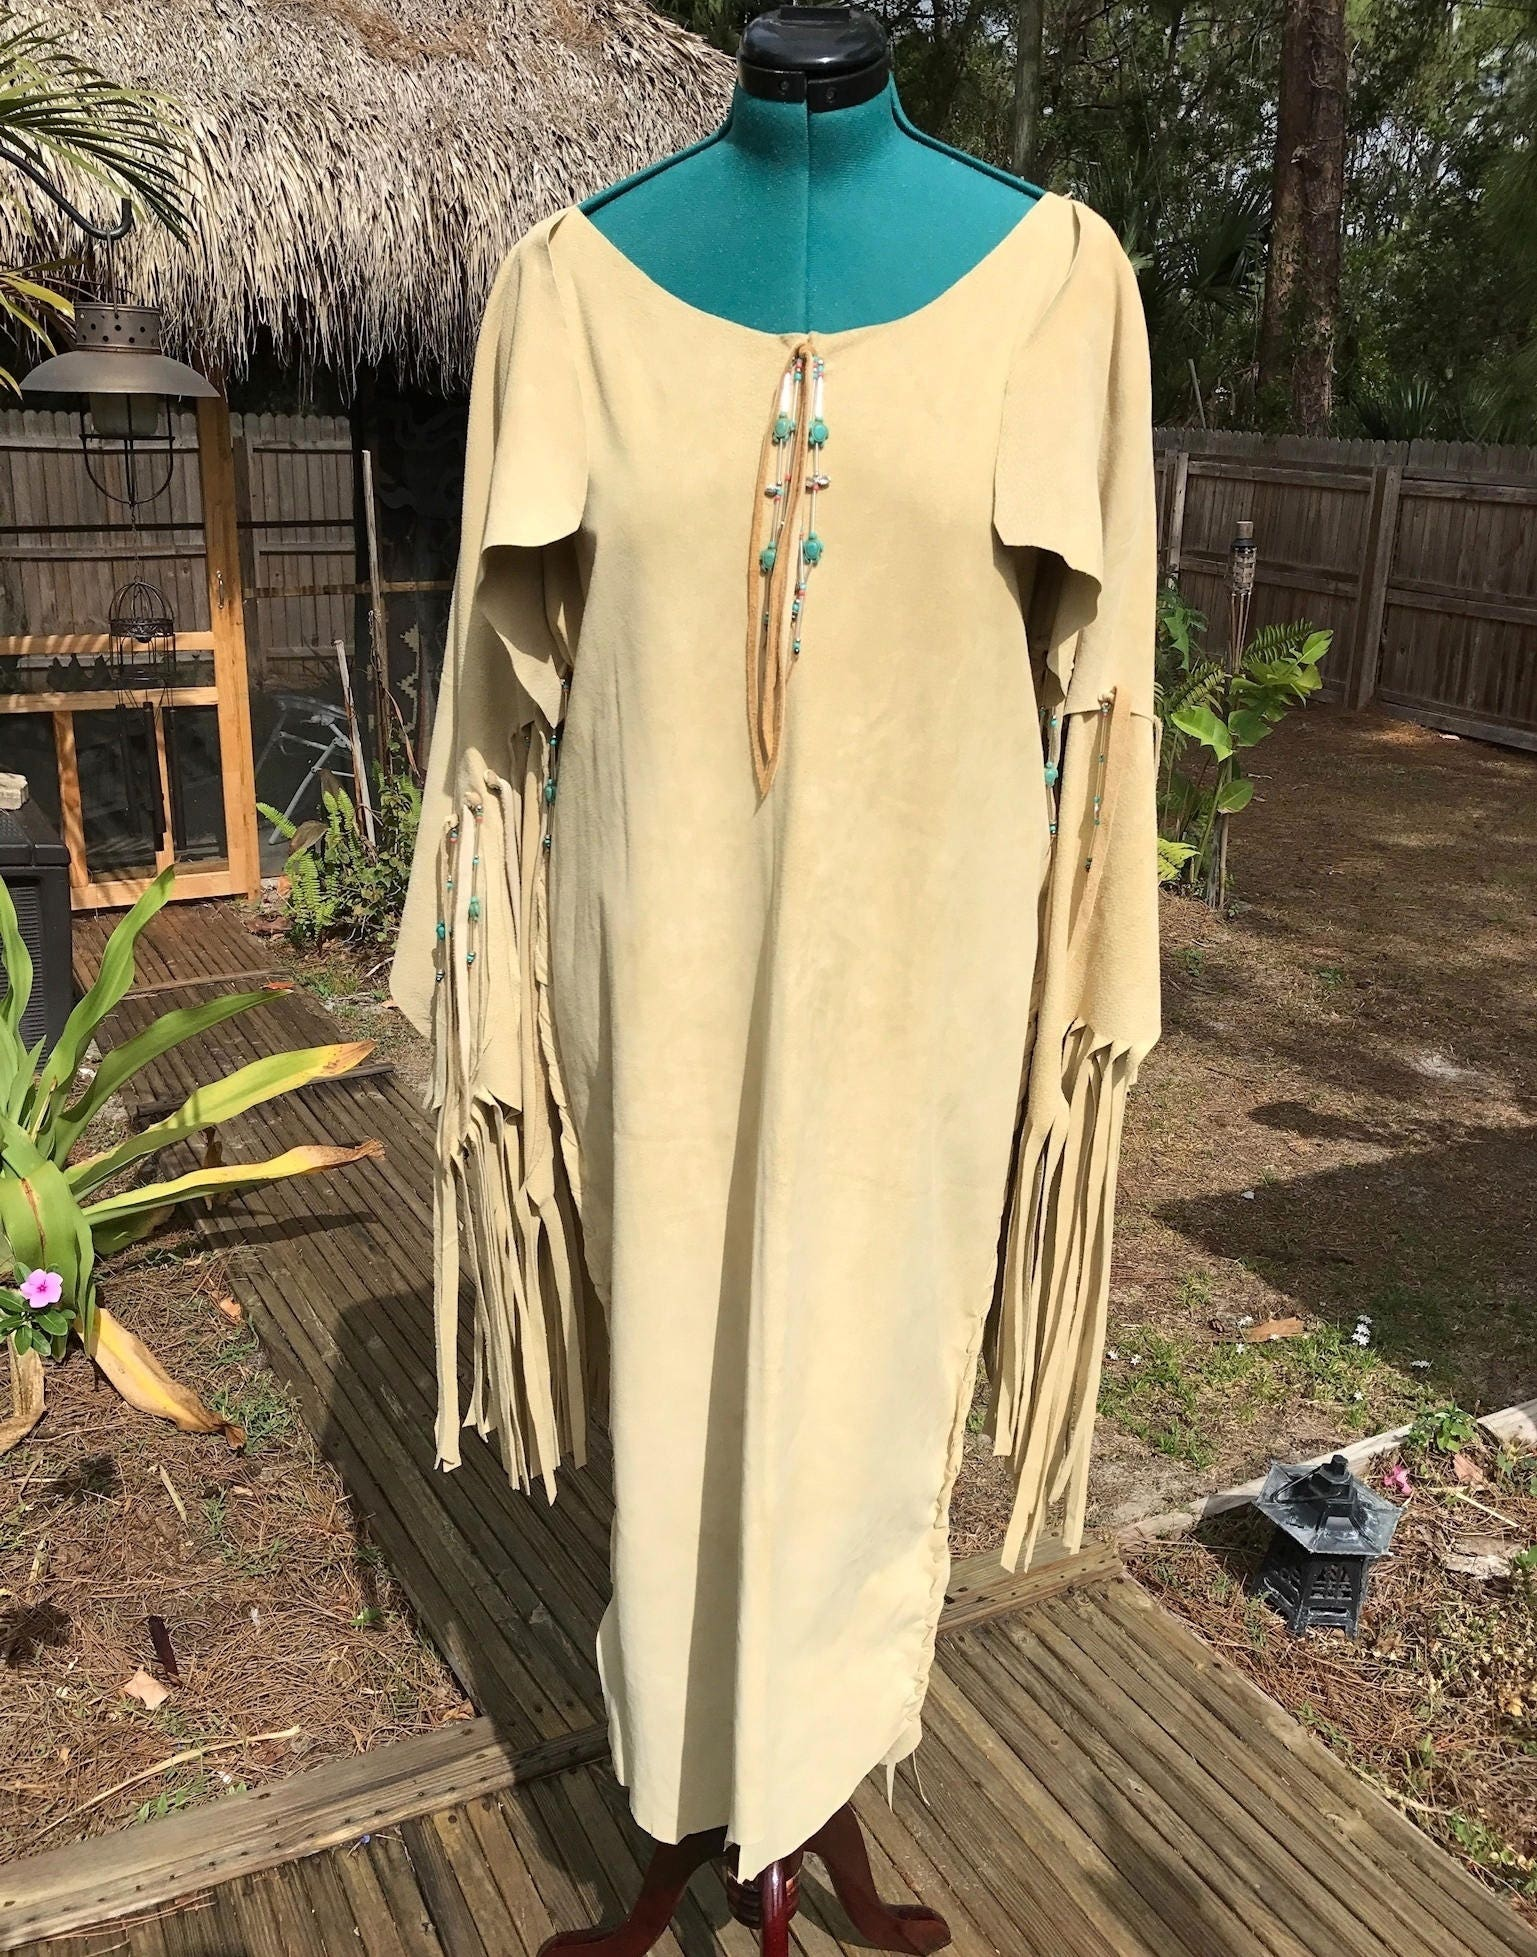 leather wedding gown native american native american wedding dress Leather Wedding Gown Native American Style Pig Suede Dress Pow Wow Dress Regalia with Fringe and Beads